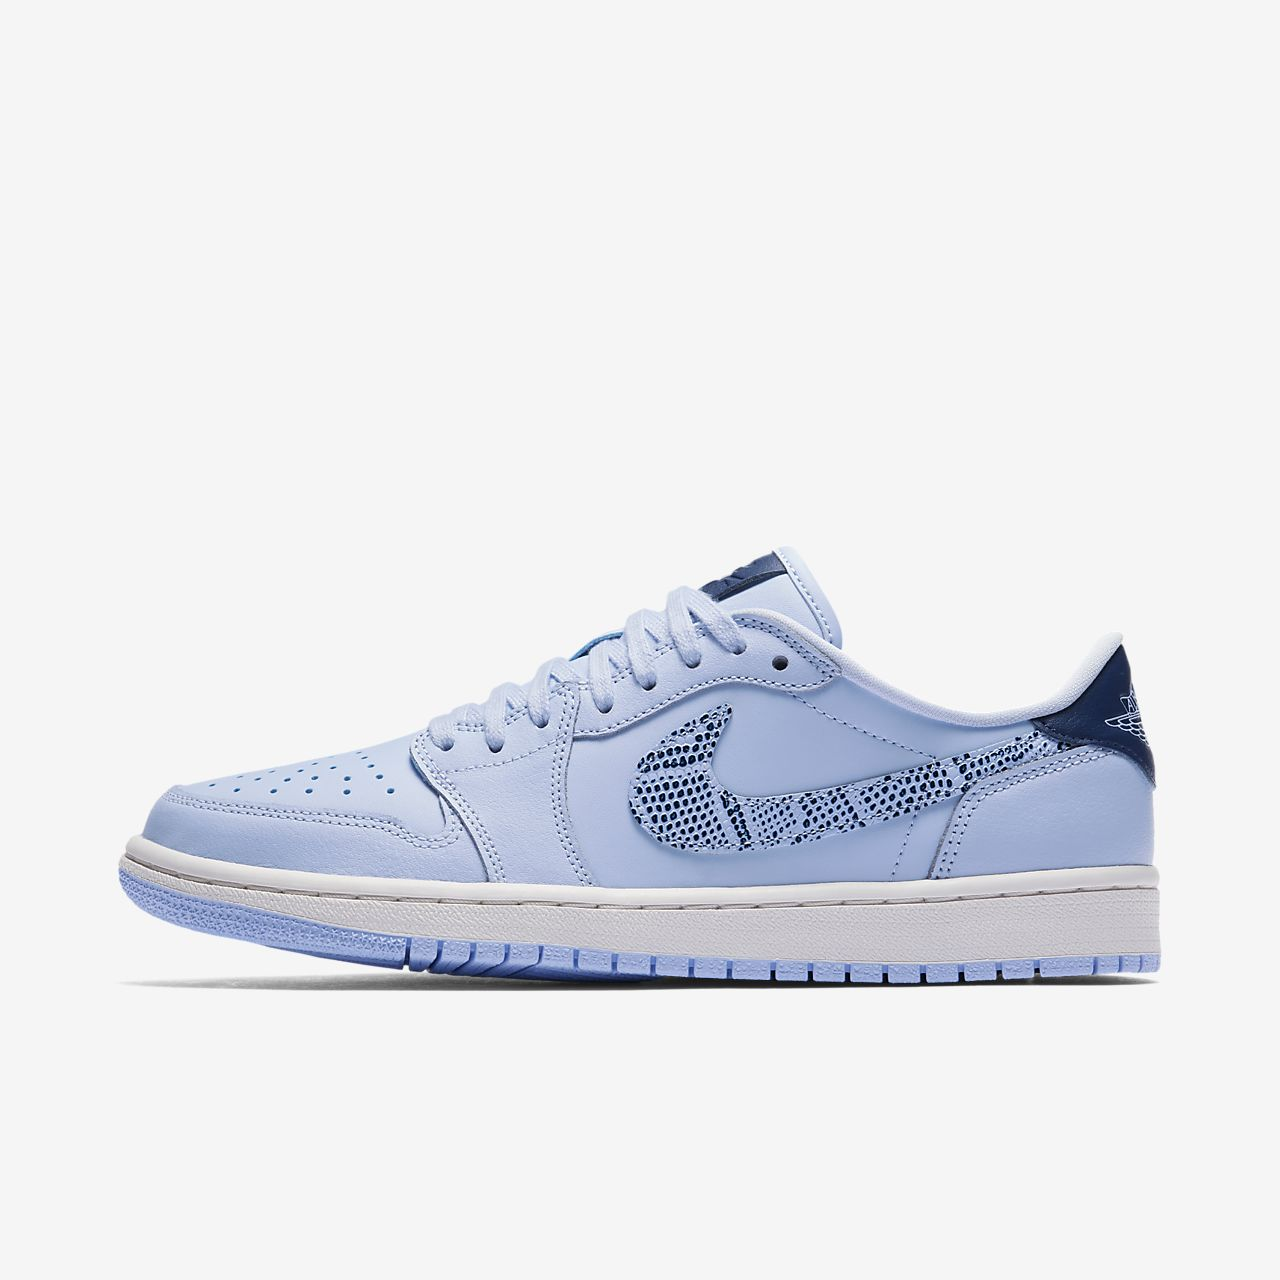 1618902ba55ad Air Jordan 1 Retro Low OG Women s Shoe. Nike.com GB